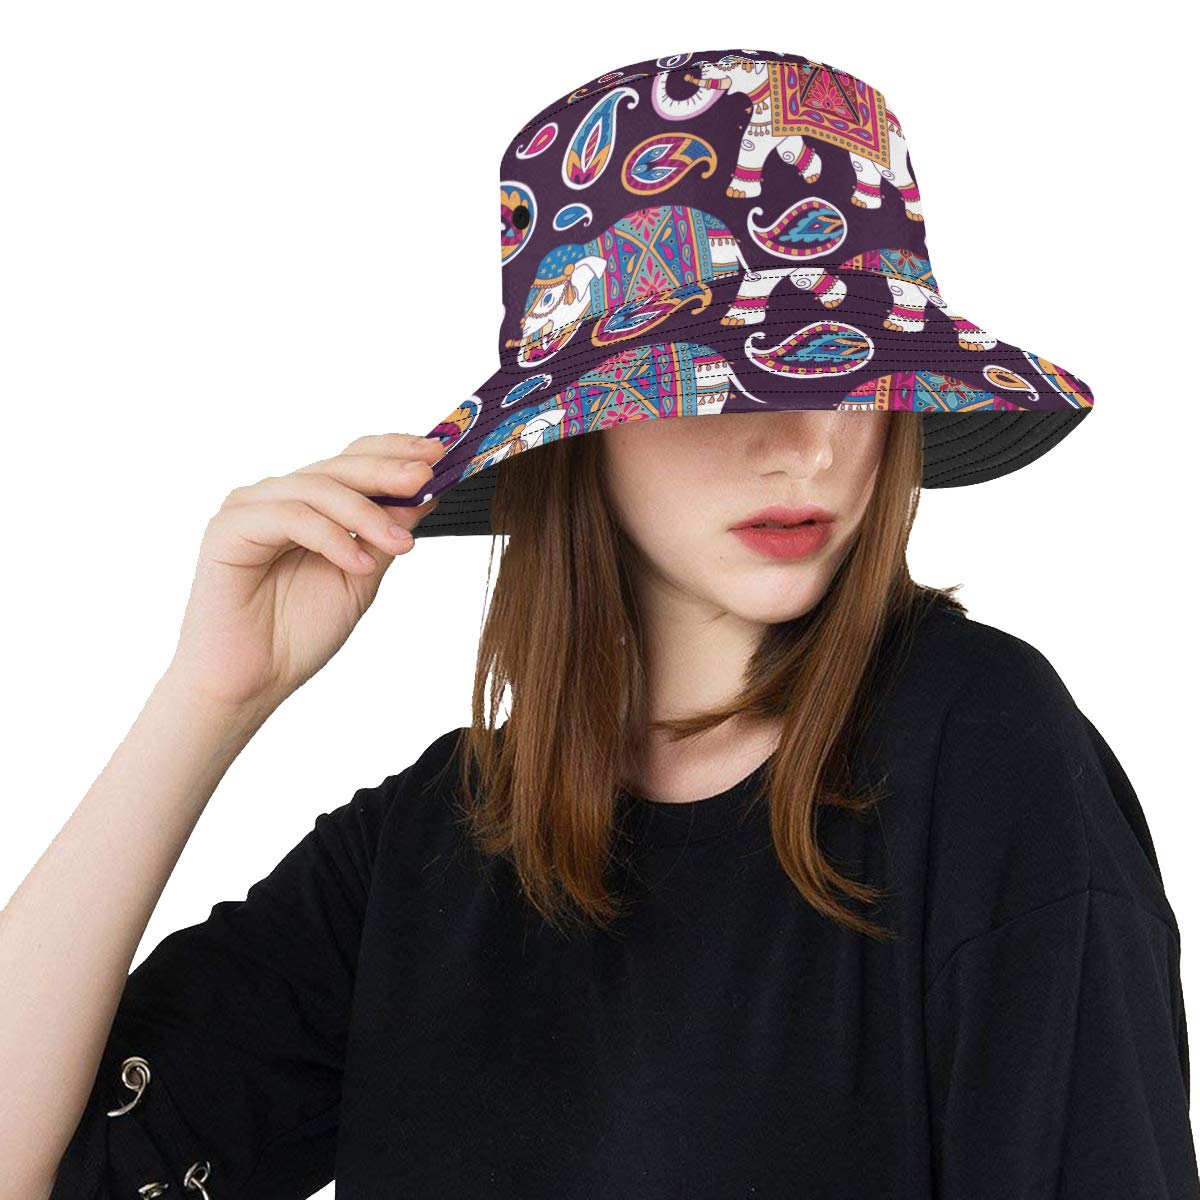 Indian Ornament Graphic Elephant New Summer Unisex Cotton Fashion Fishing Sun Bucket Hats for Kid Teens Women and Men with Customize Top Packable Fisherman Cap for Outdoor Travel